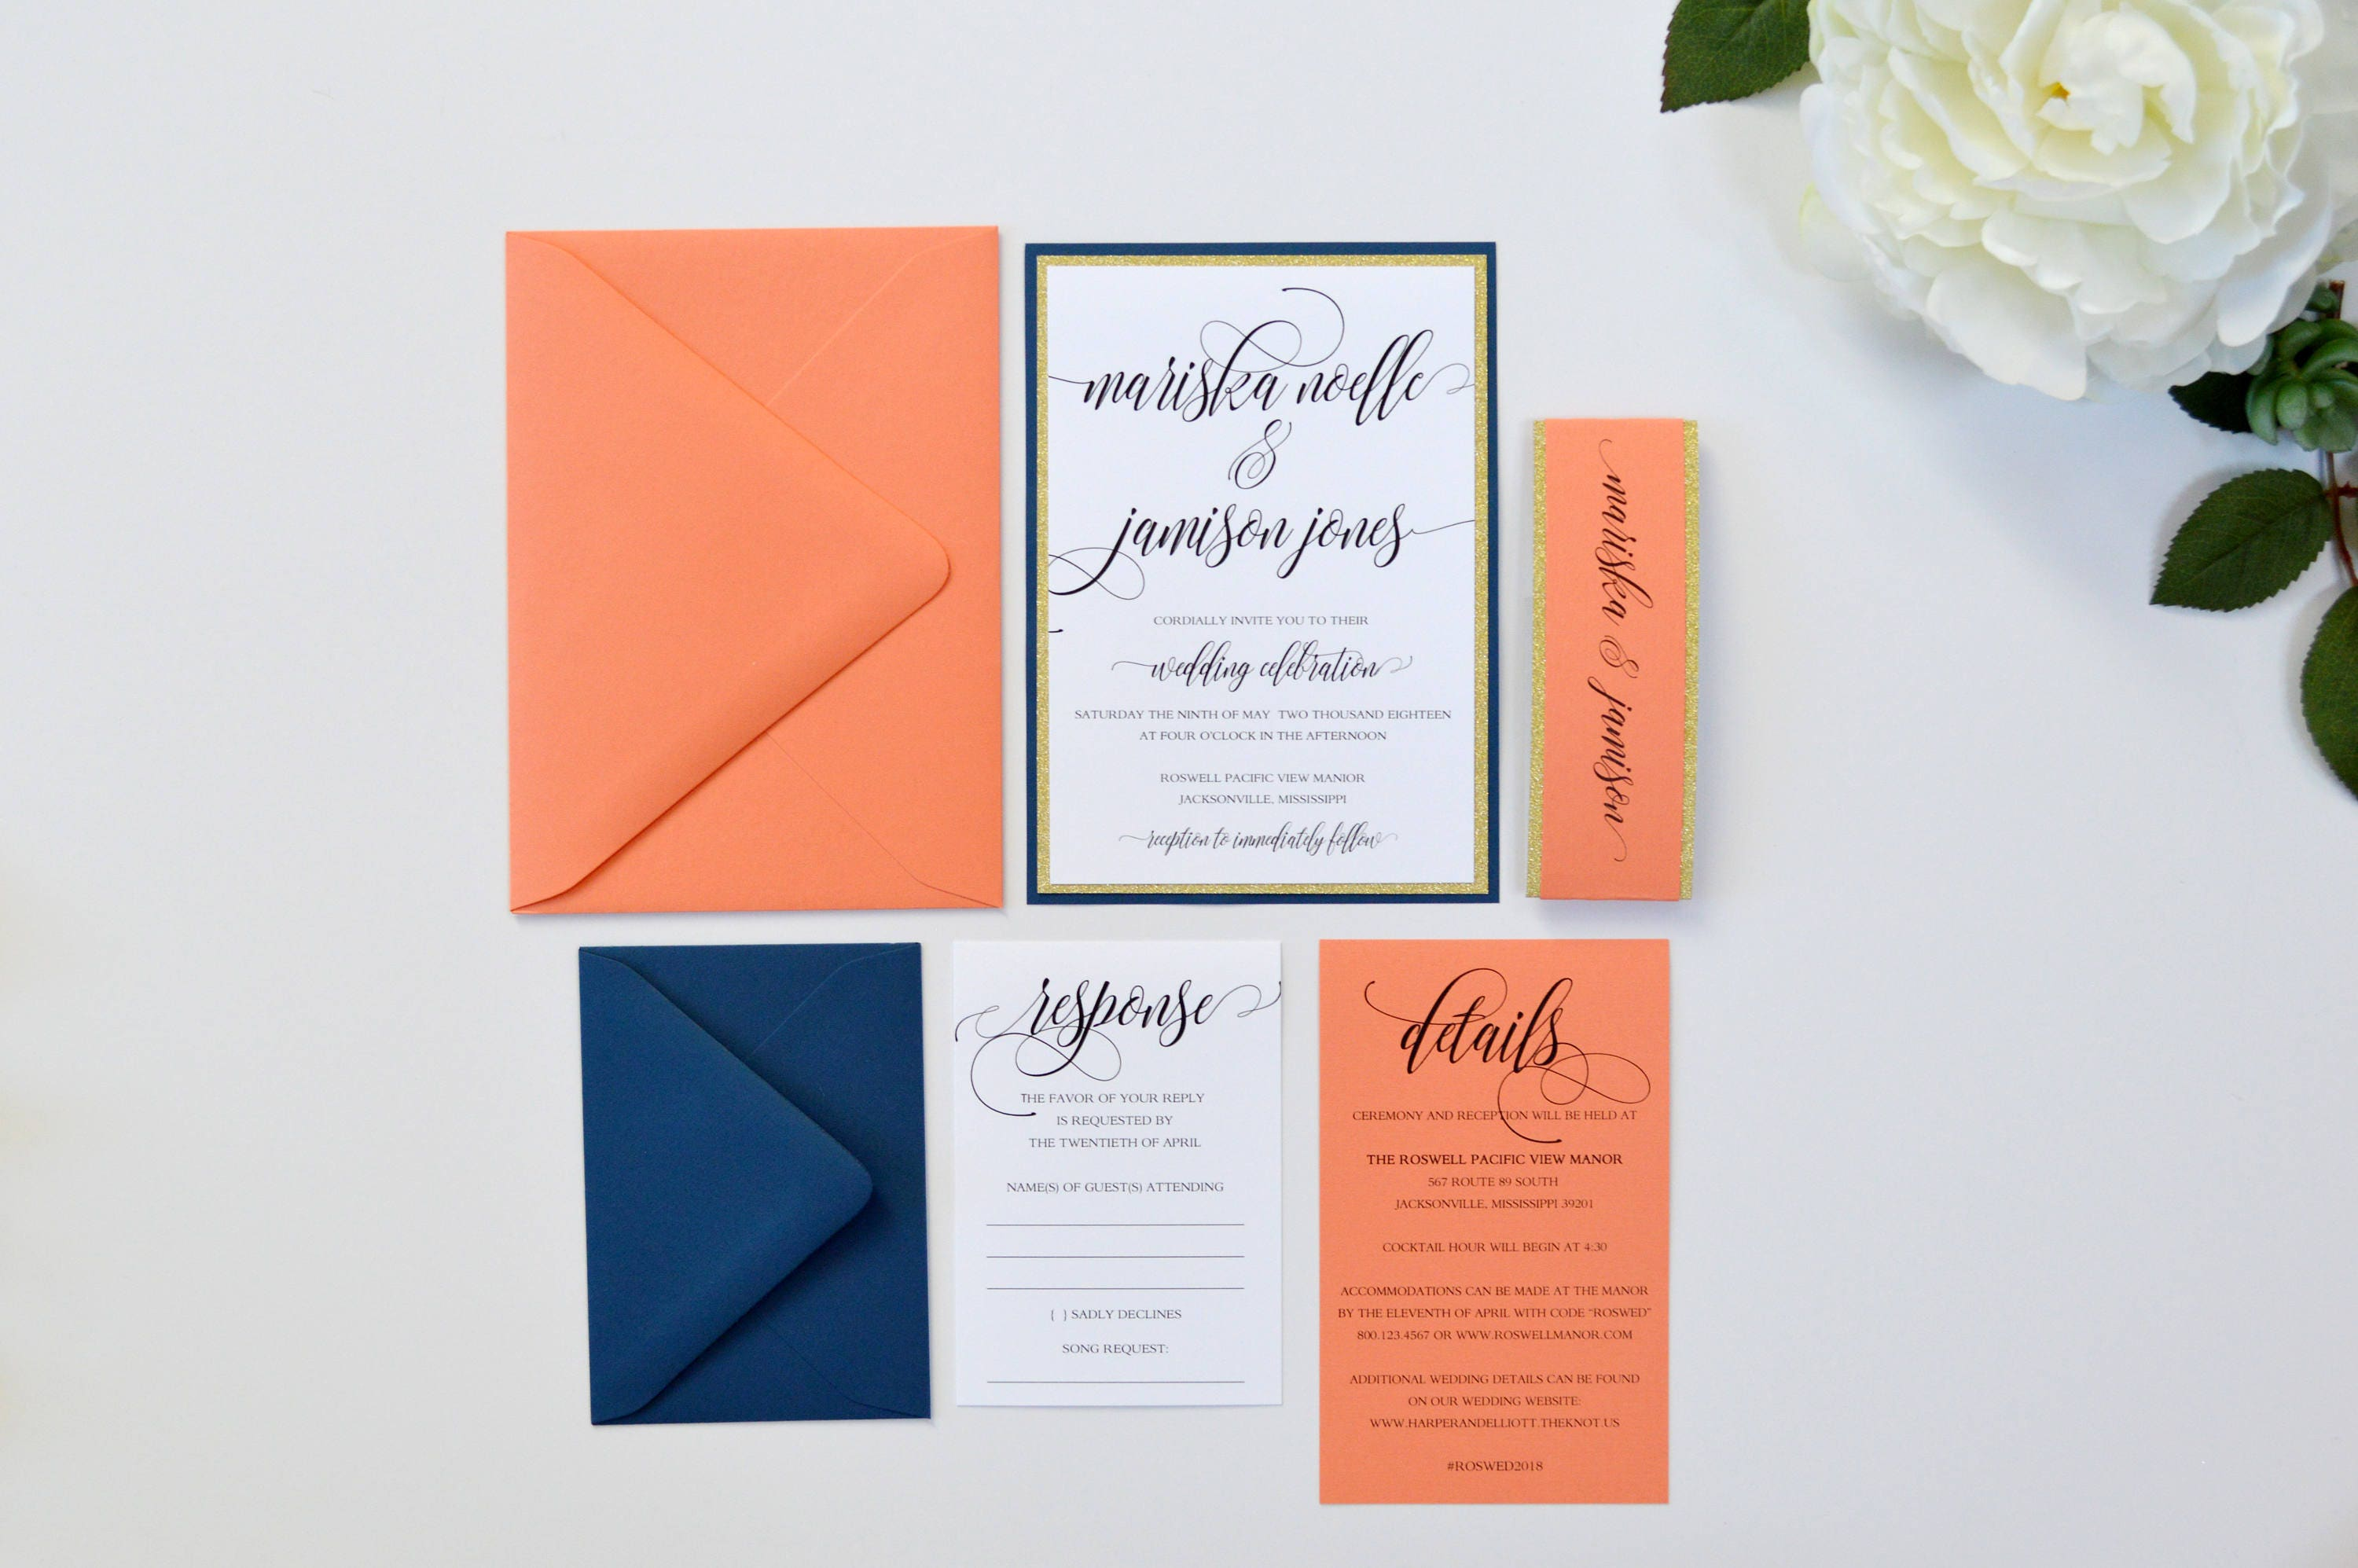 Blue And Coral Wedding Invitations: Navy Wedding Invitations Coral Wedding Invitation Navy Blue